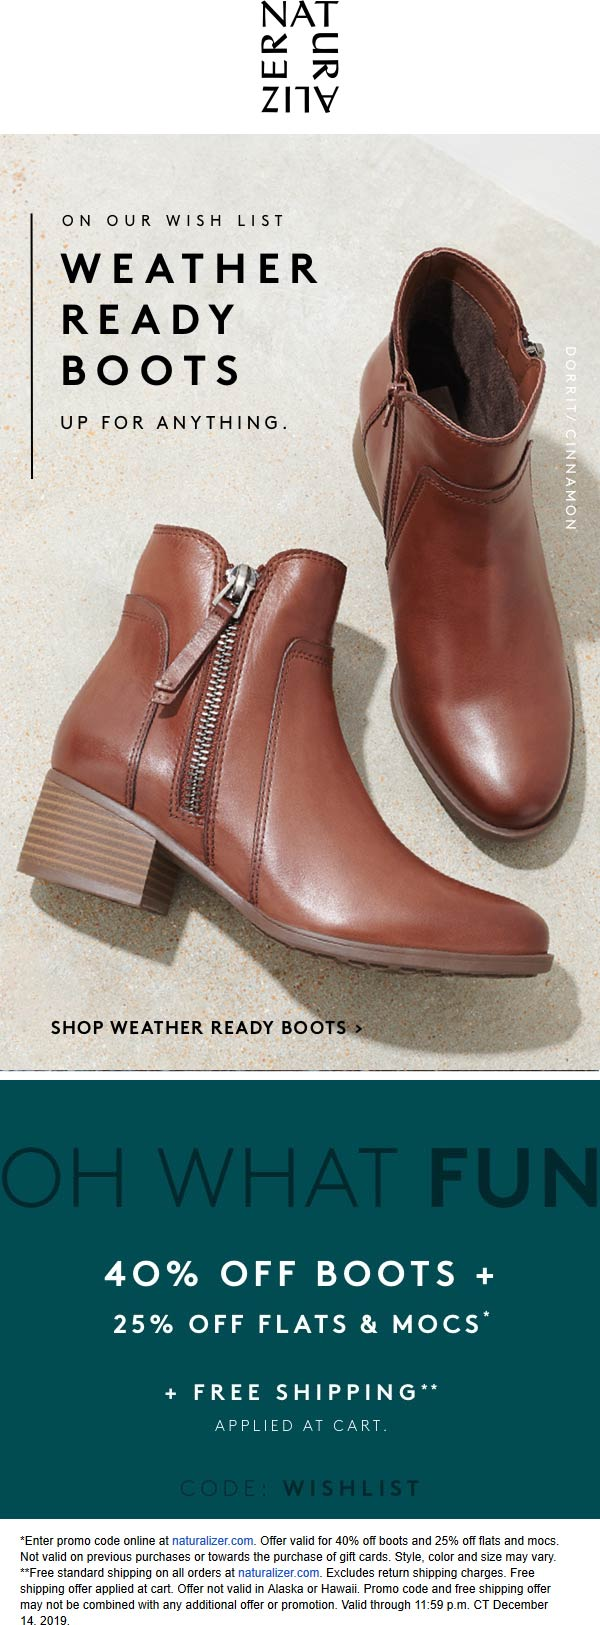 Naturalizer Coupon January 2020 40% off boots & more at Naturalizer via promo coe WISHLIST